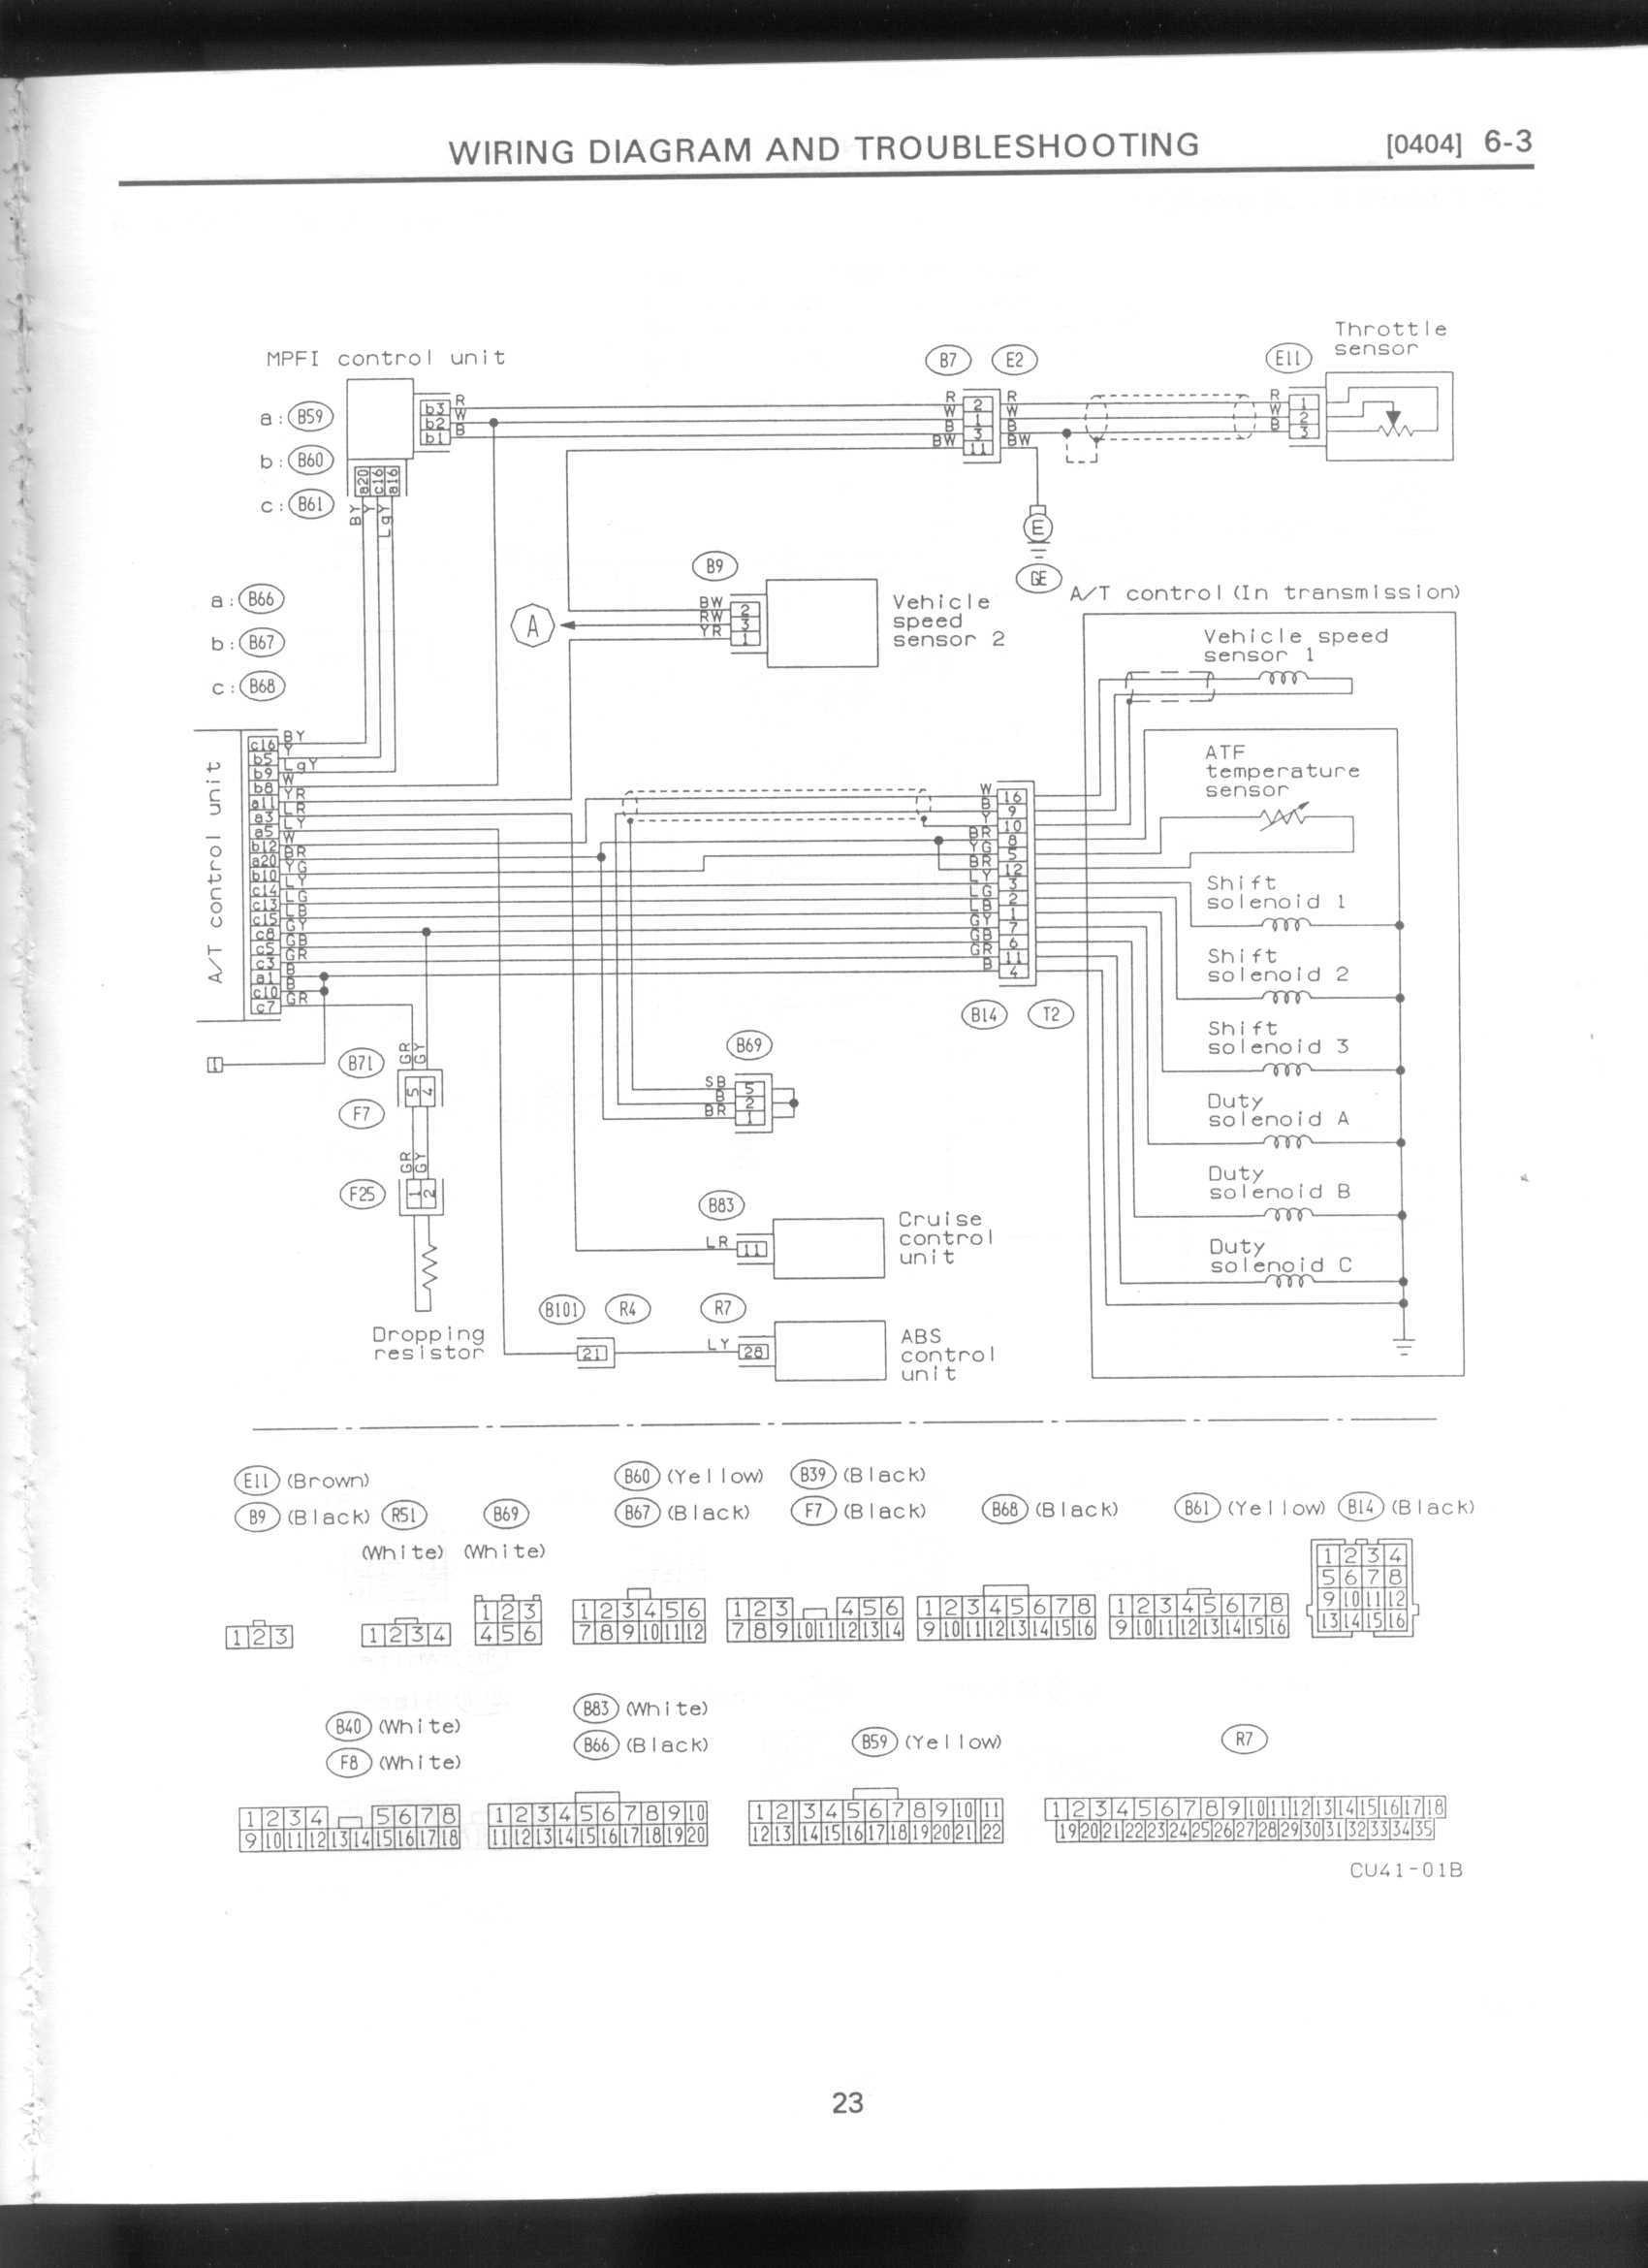 subaru wrx radio wiring diagram wiring diagrams and schematics 1992 subaru legacy wagon radio wiring diagram diagrams